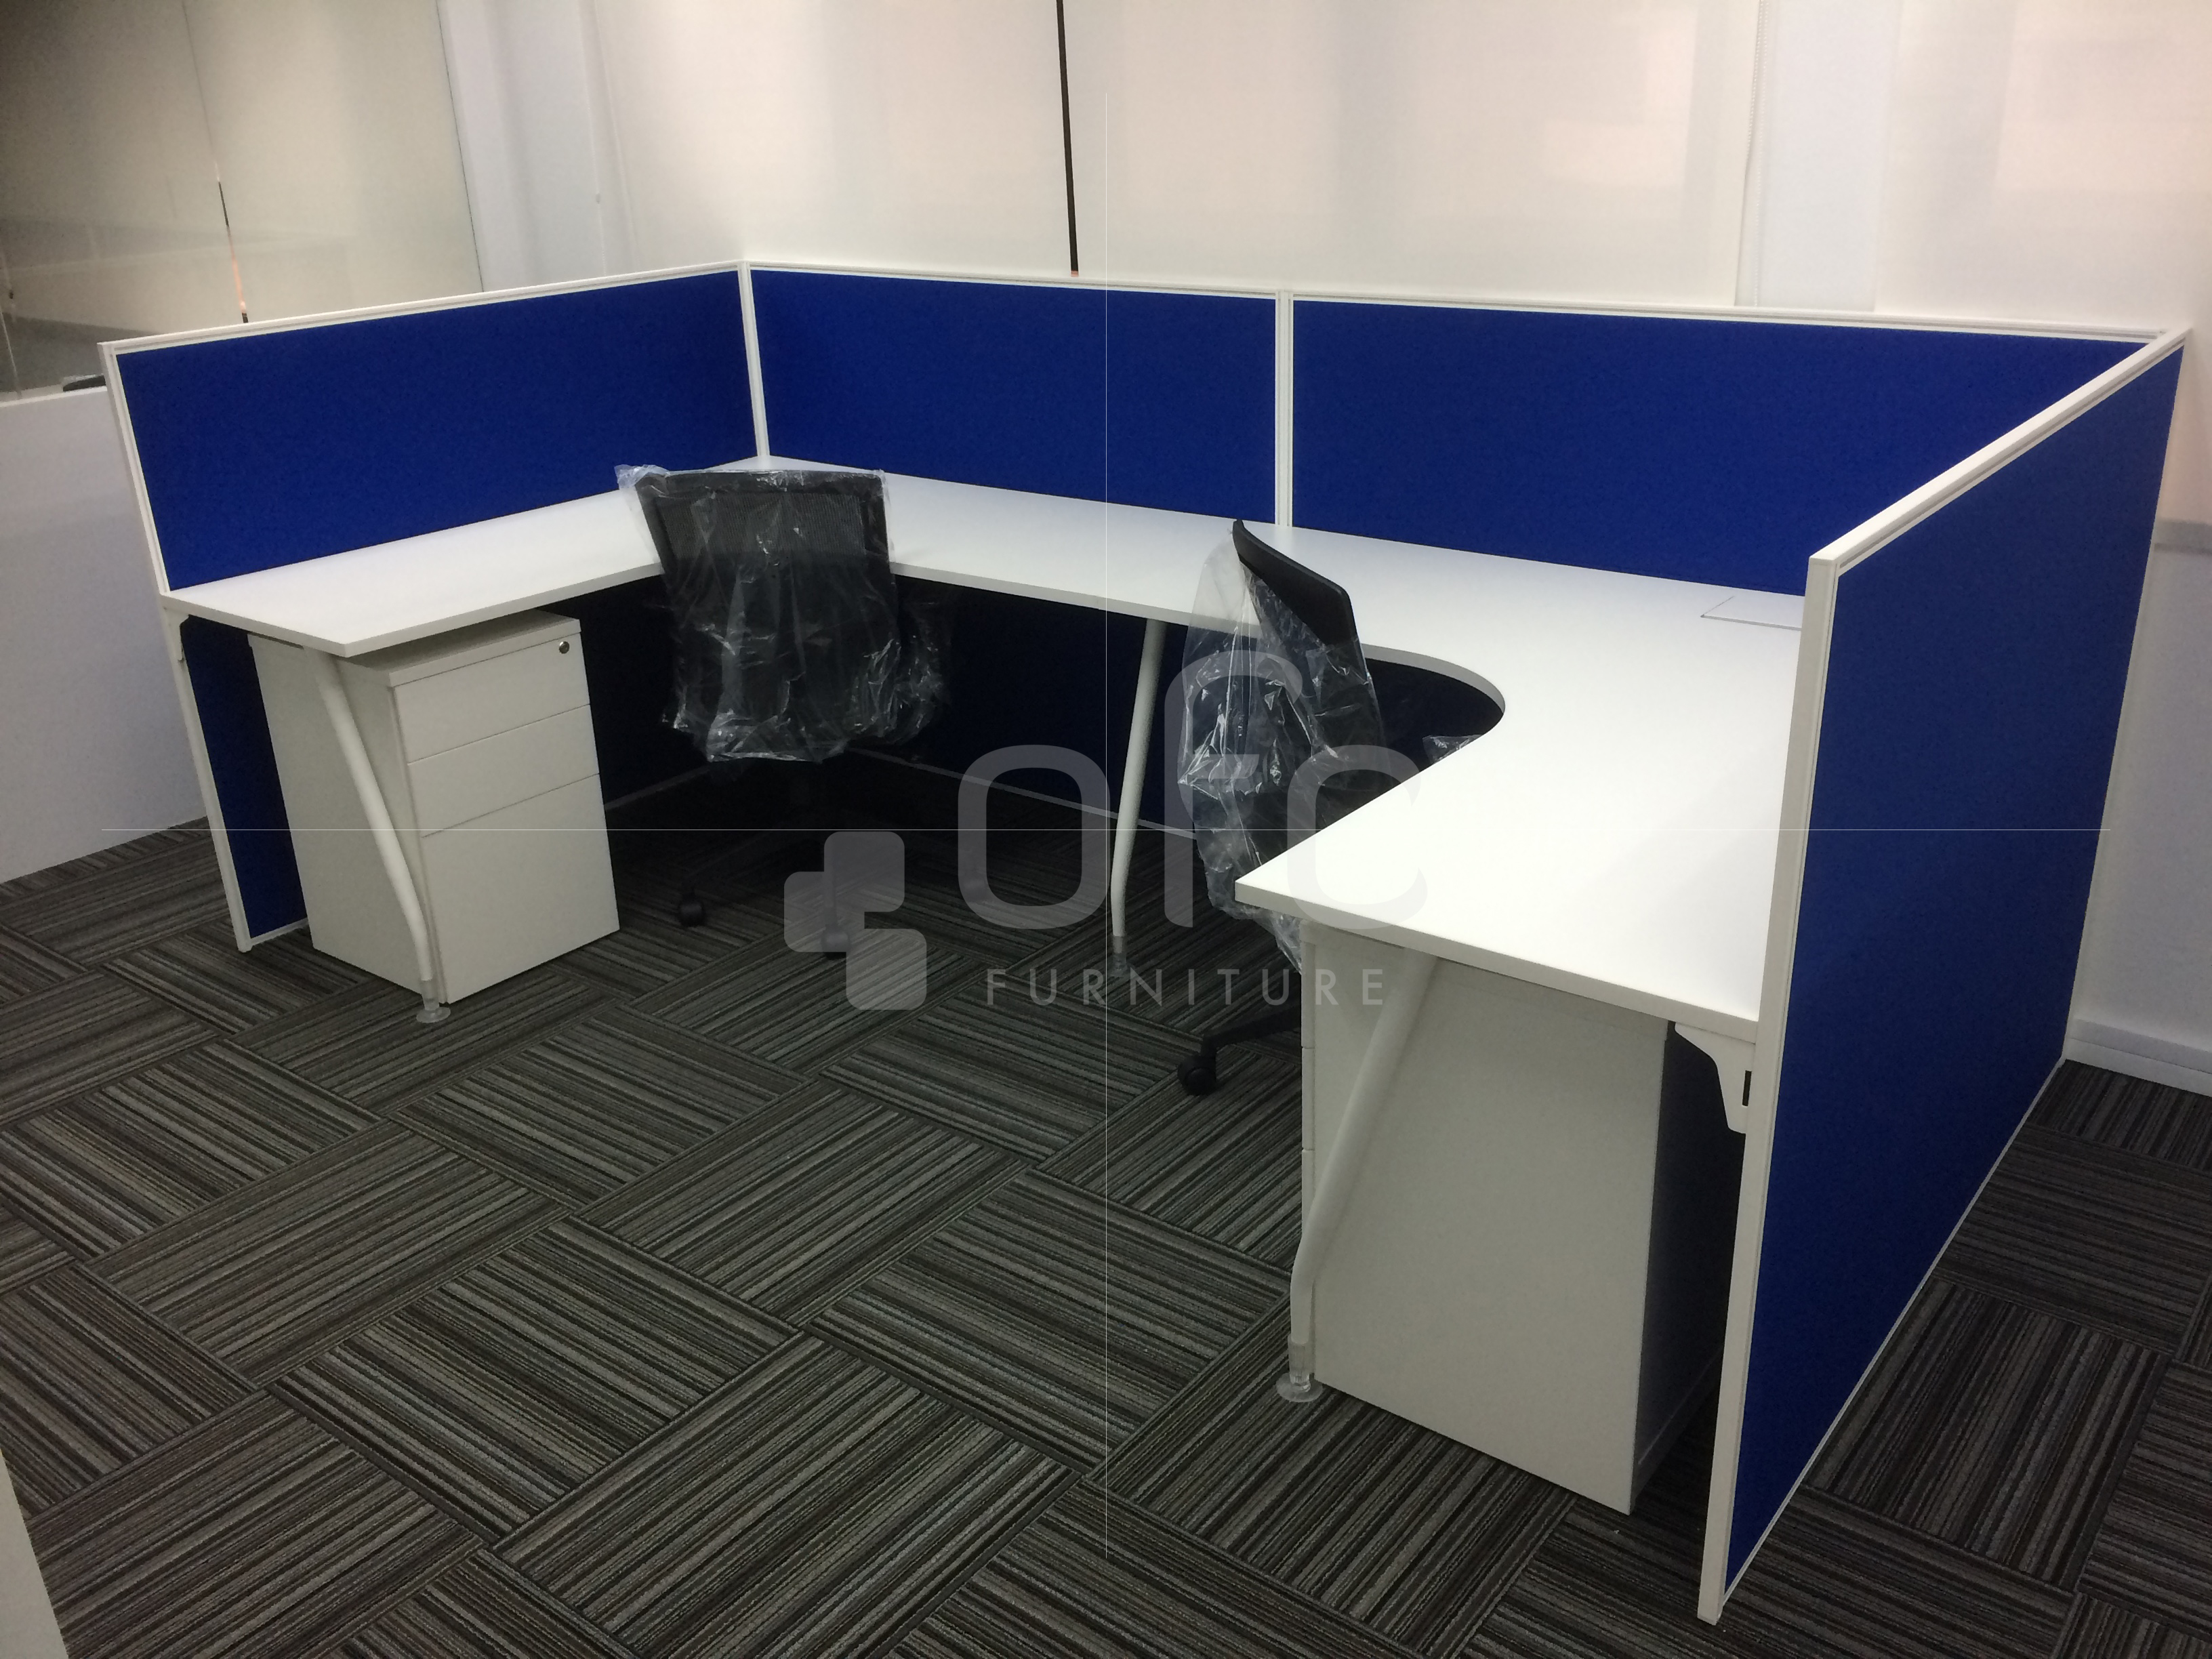 custom-designed office workstation in sg in blue and white color